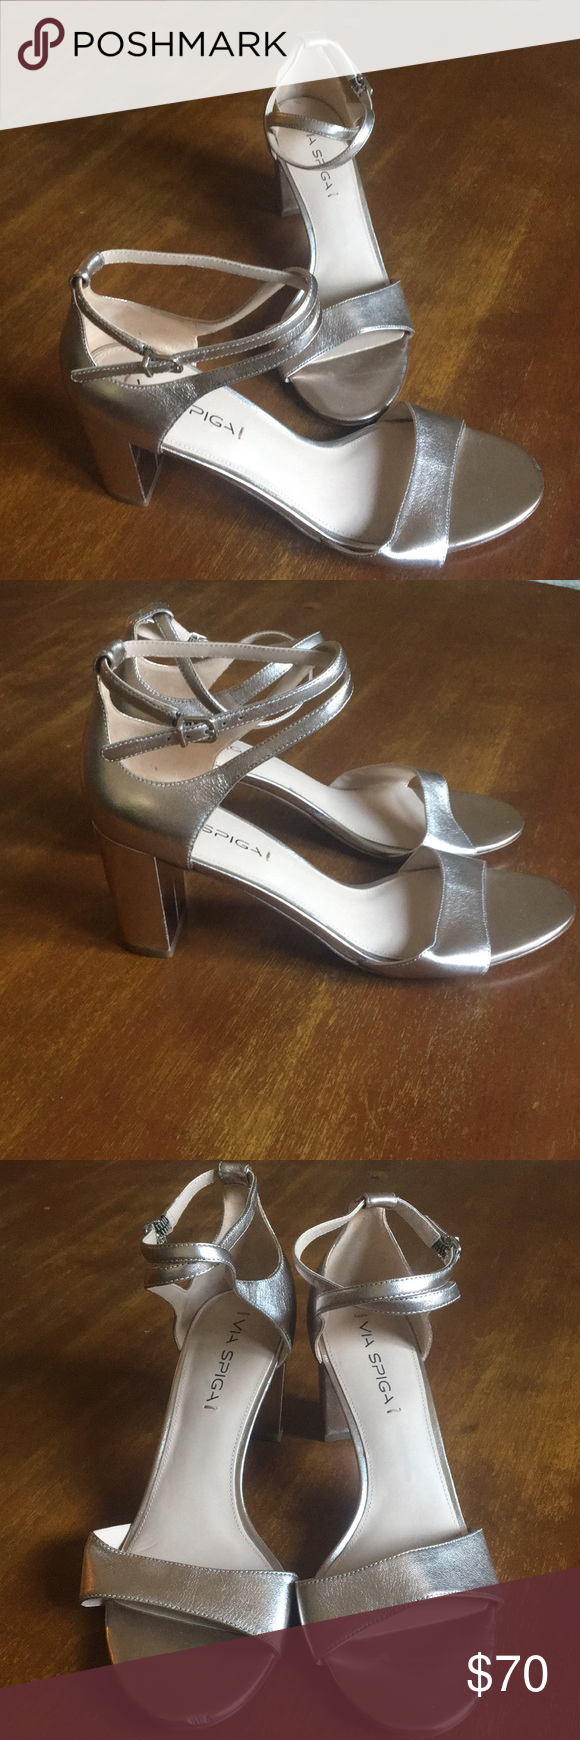 380d13a3c5f Via Spiga Wendi Metallic rose gold leather. Criss cross ankle strap. Block  heel sandals. Brand new  never worn! One tiny imperfection at right toe